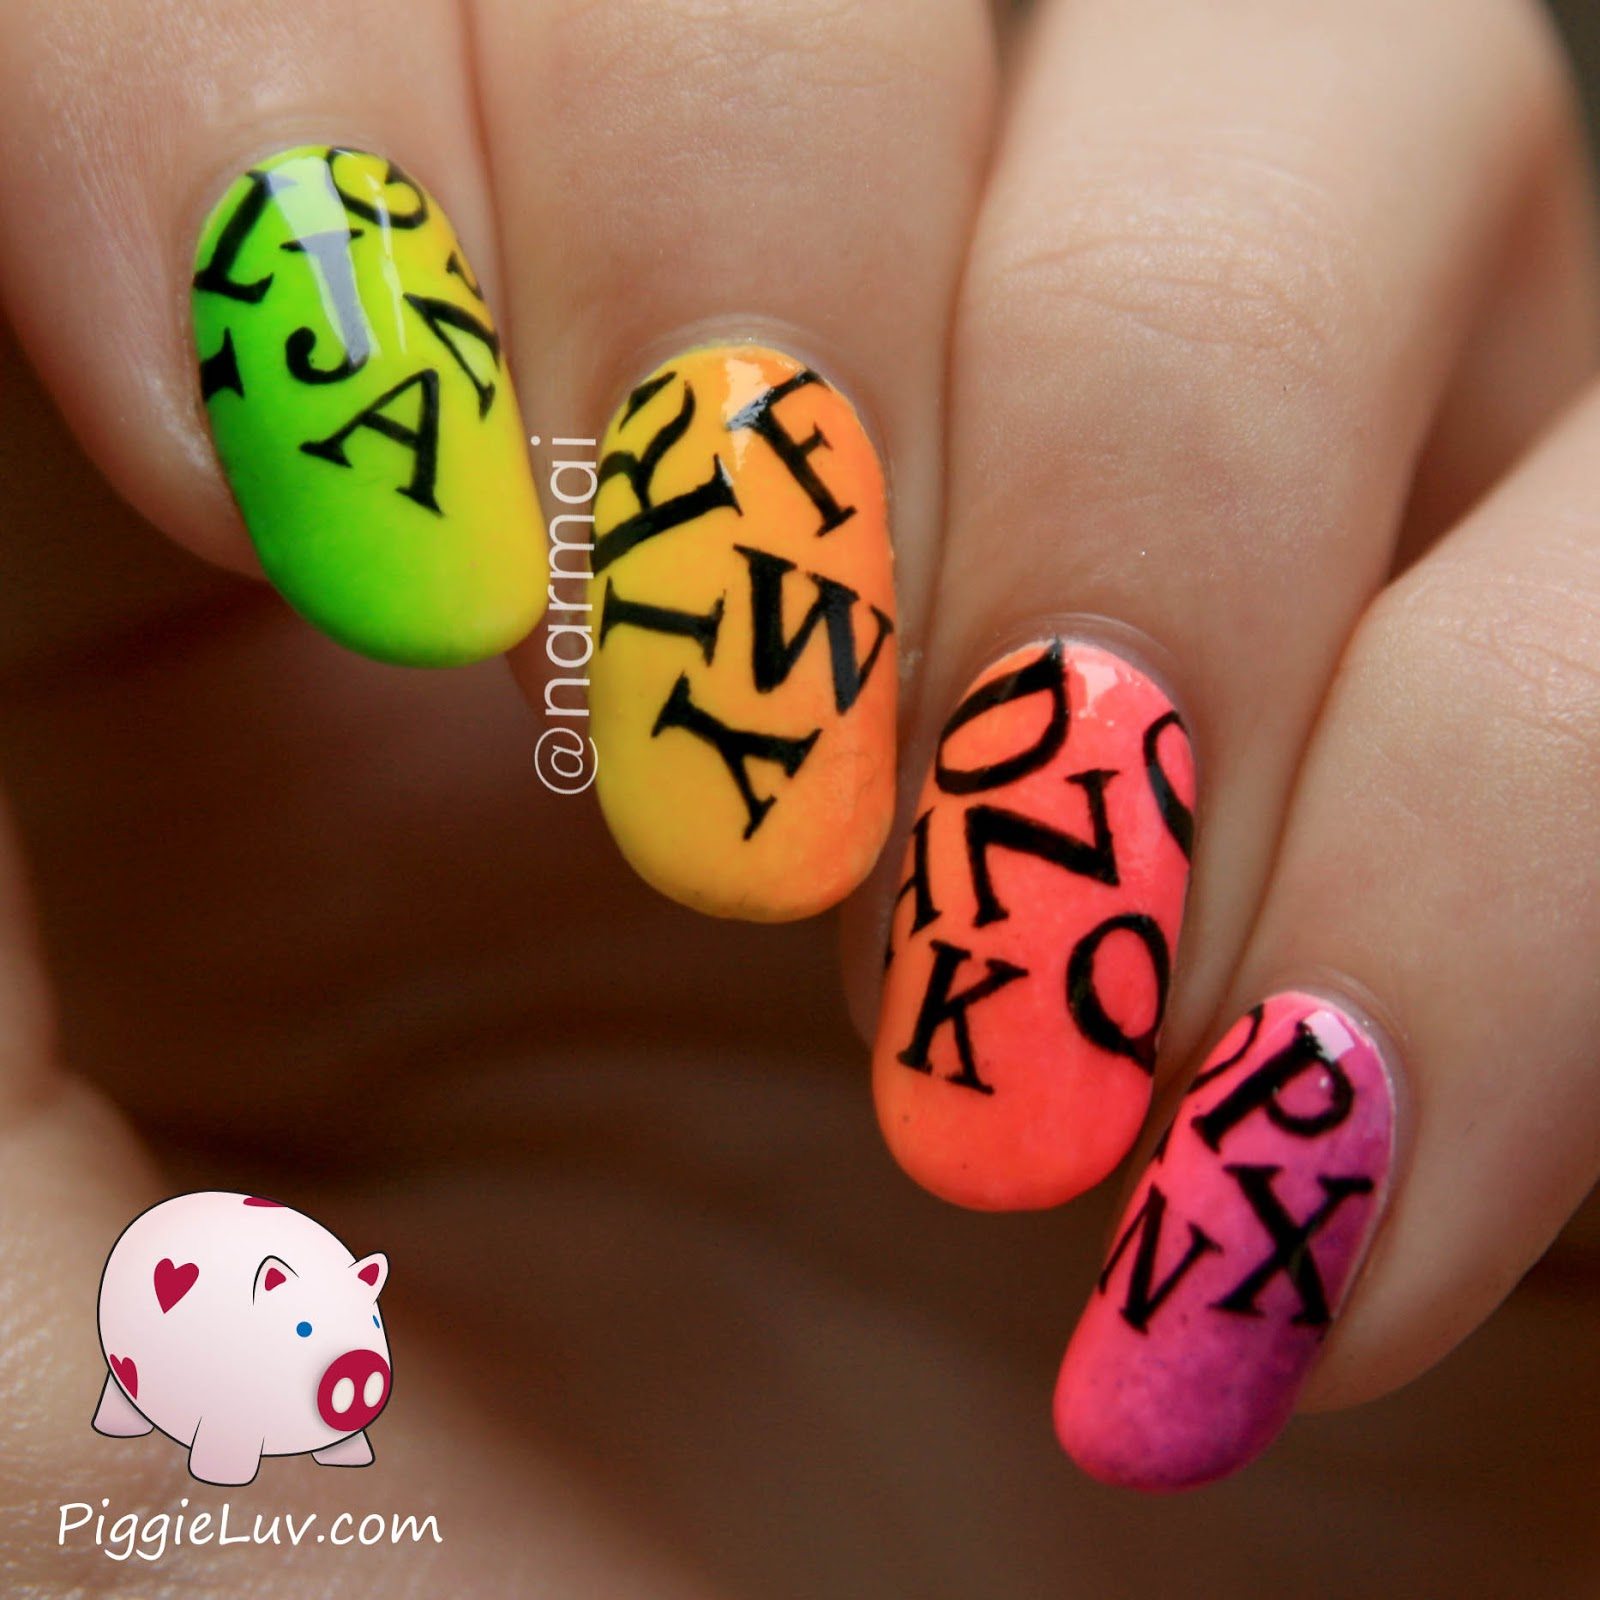 Piggieluv 2014 neon letter rain nail art glow in the dark video tutorial solutioingenieria